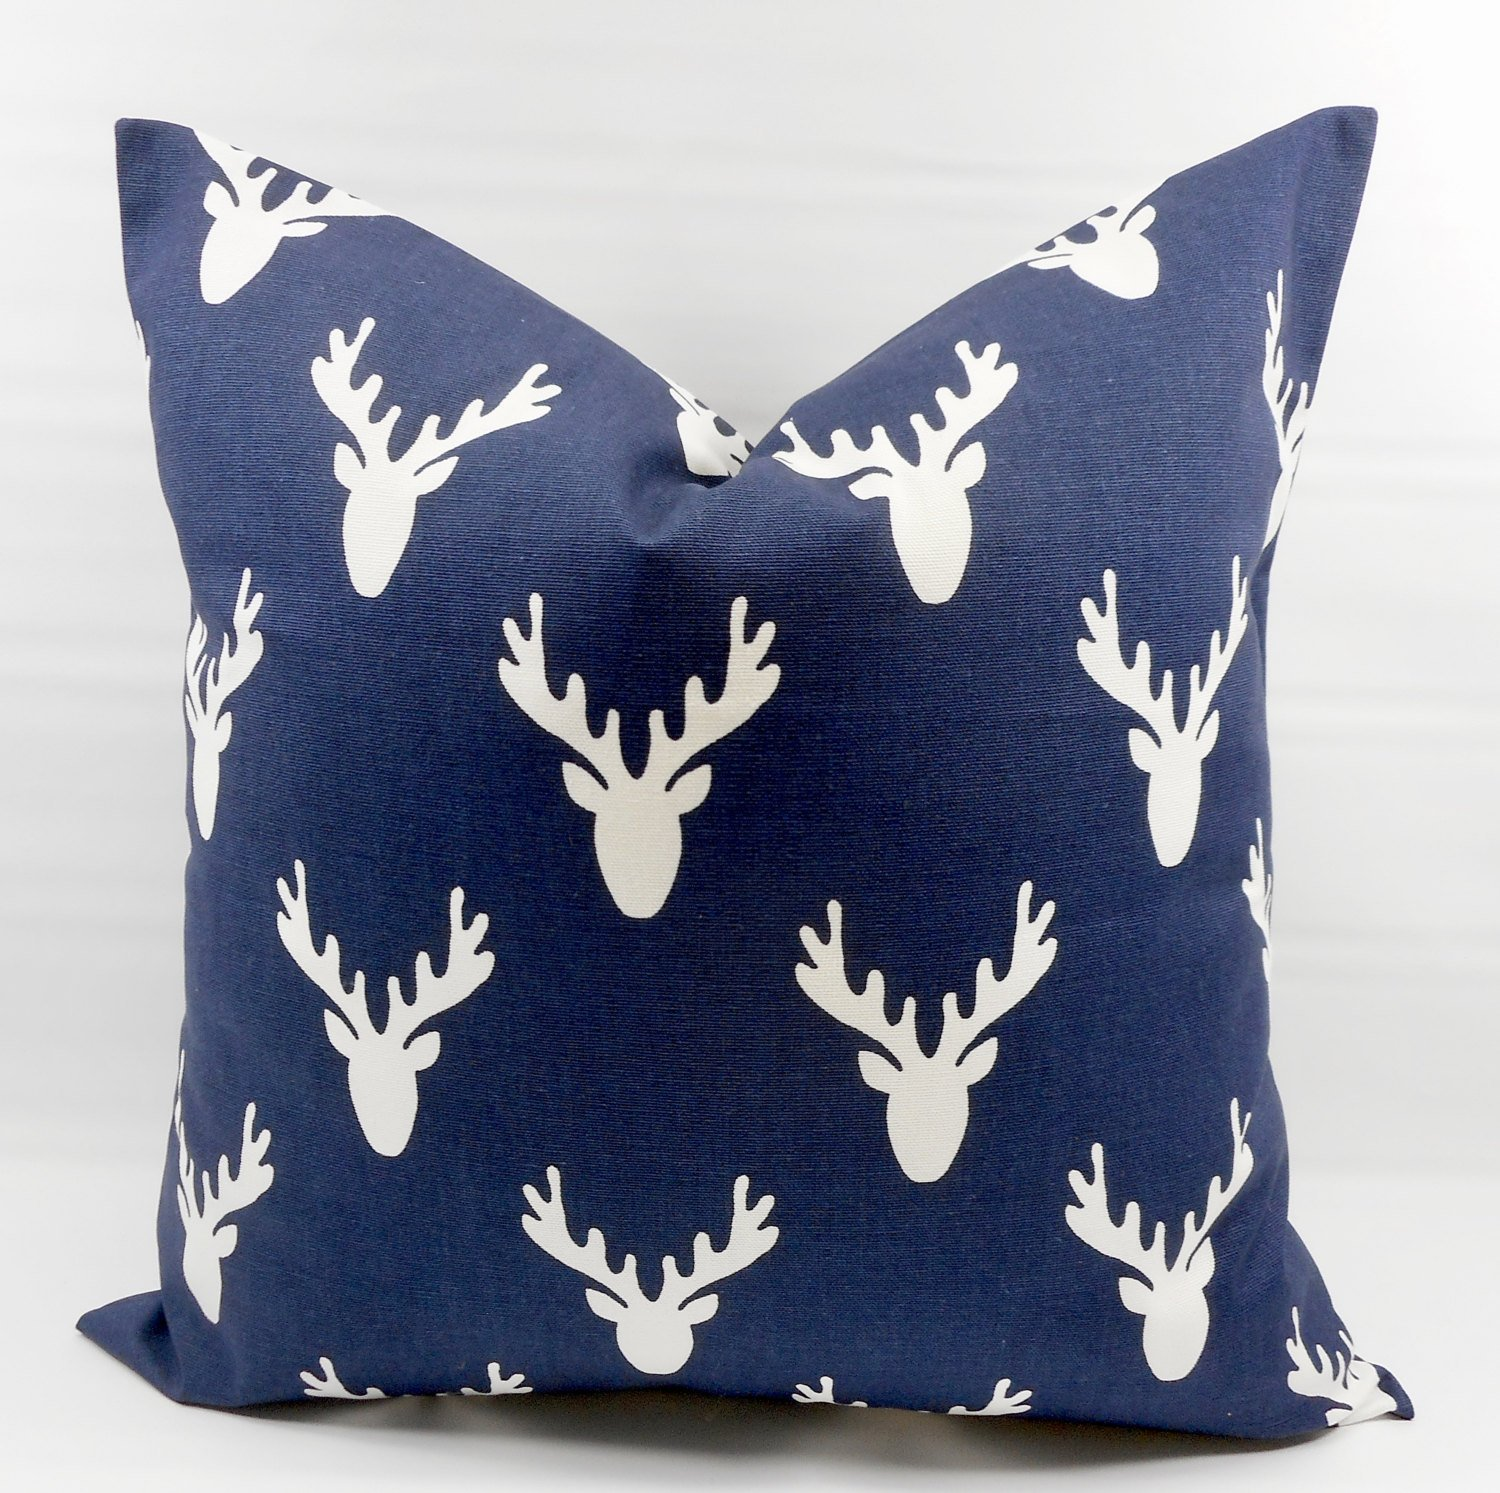 Antler Blue & white Pillow cover. Sham cover. throw Pillow cover. Select size.